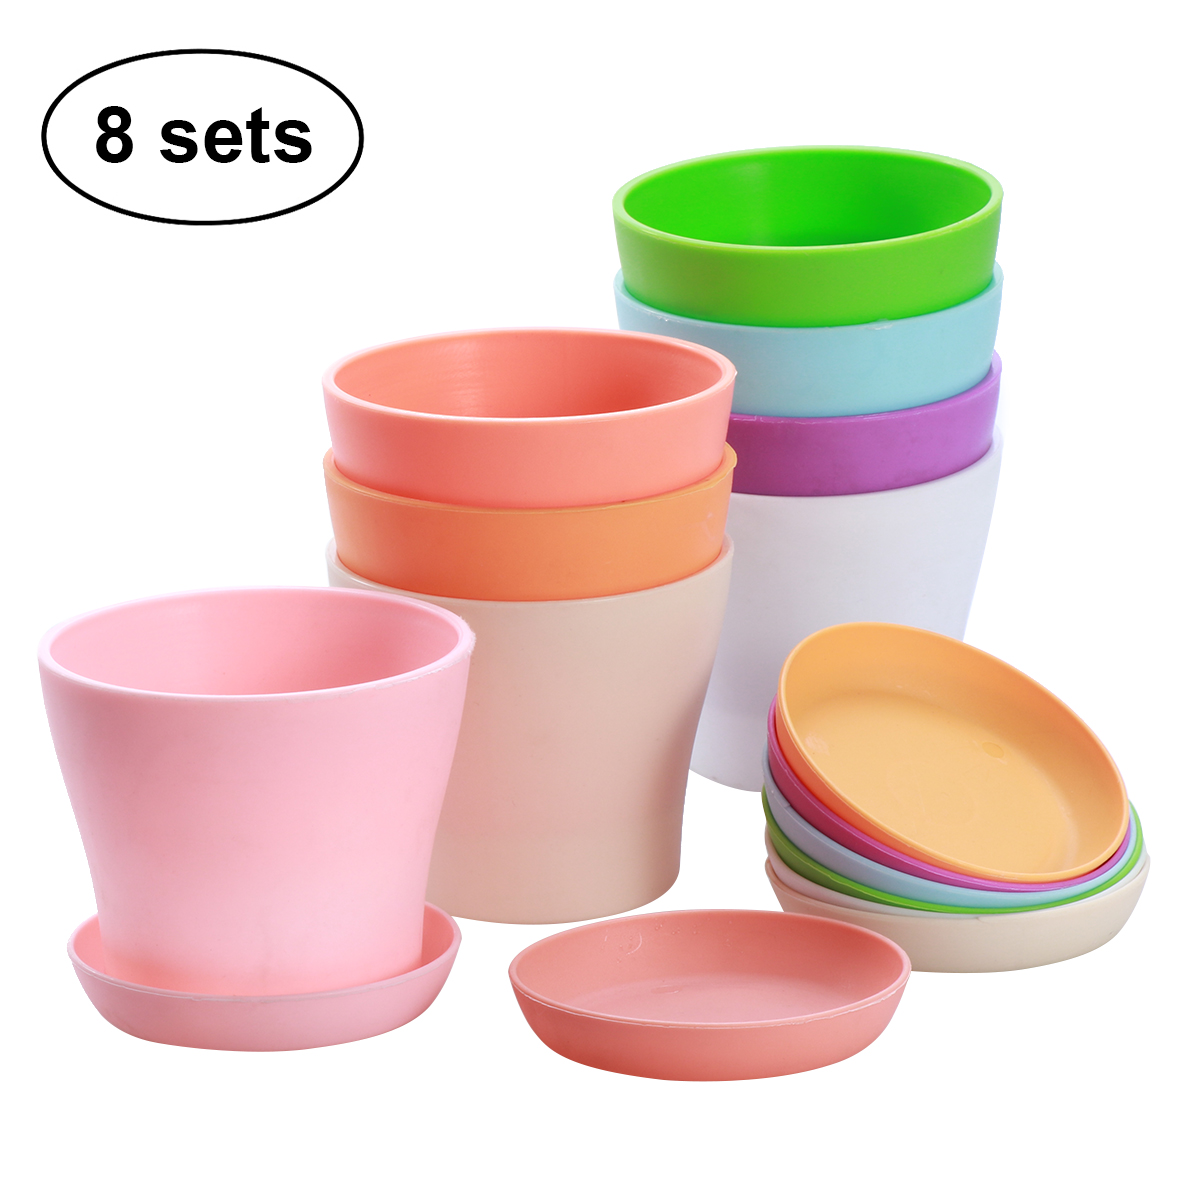 8PCS Plastic Hign-waist Flower Pots Plant Pots with Tray for Fleshiness Planter Garden Balcony - XS